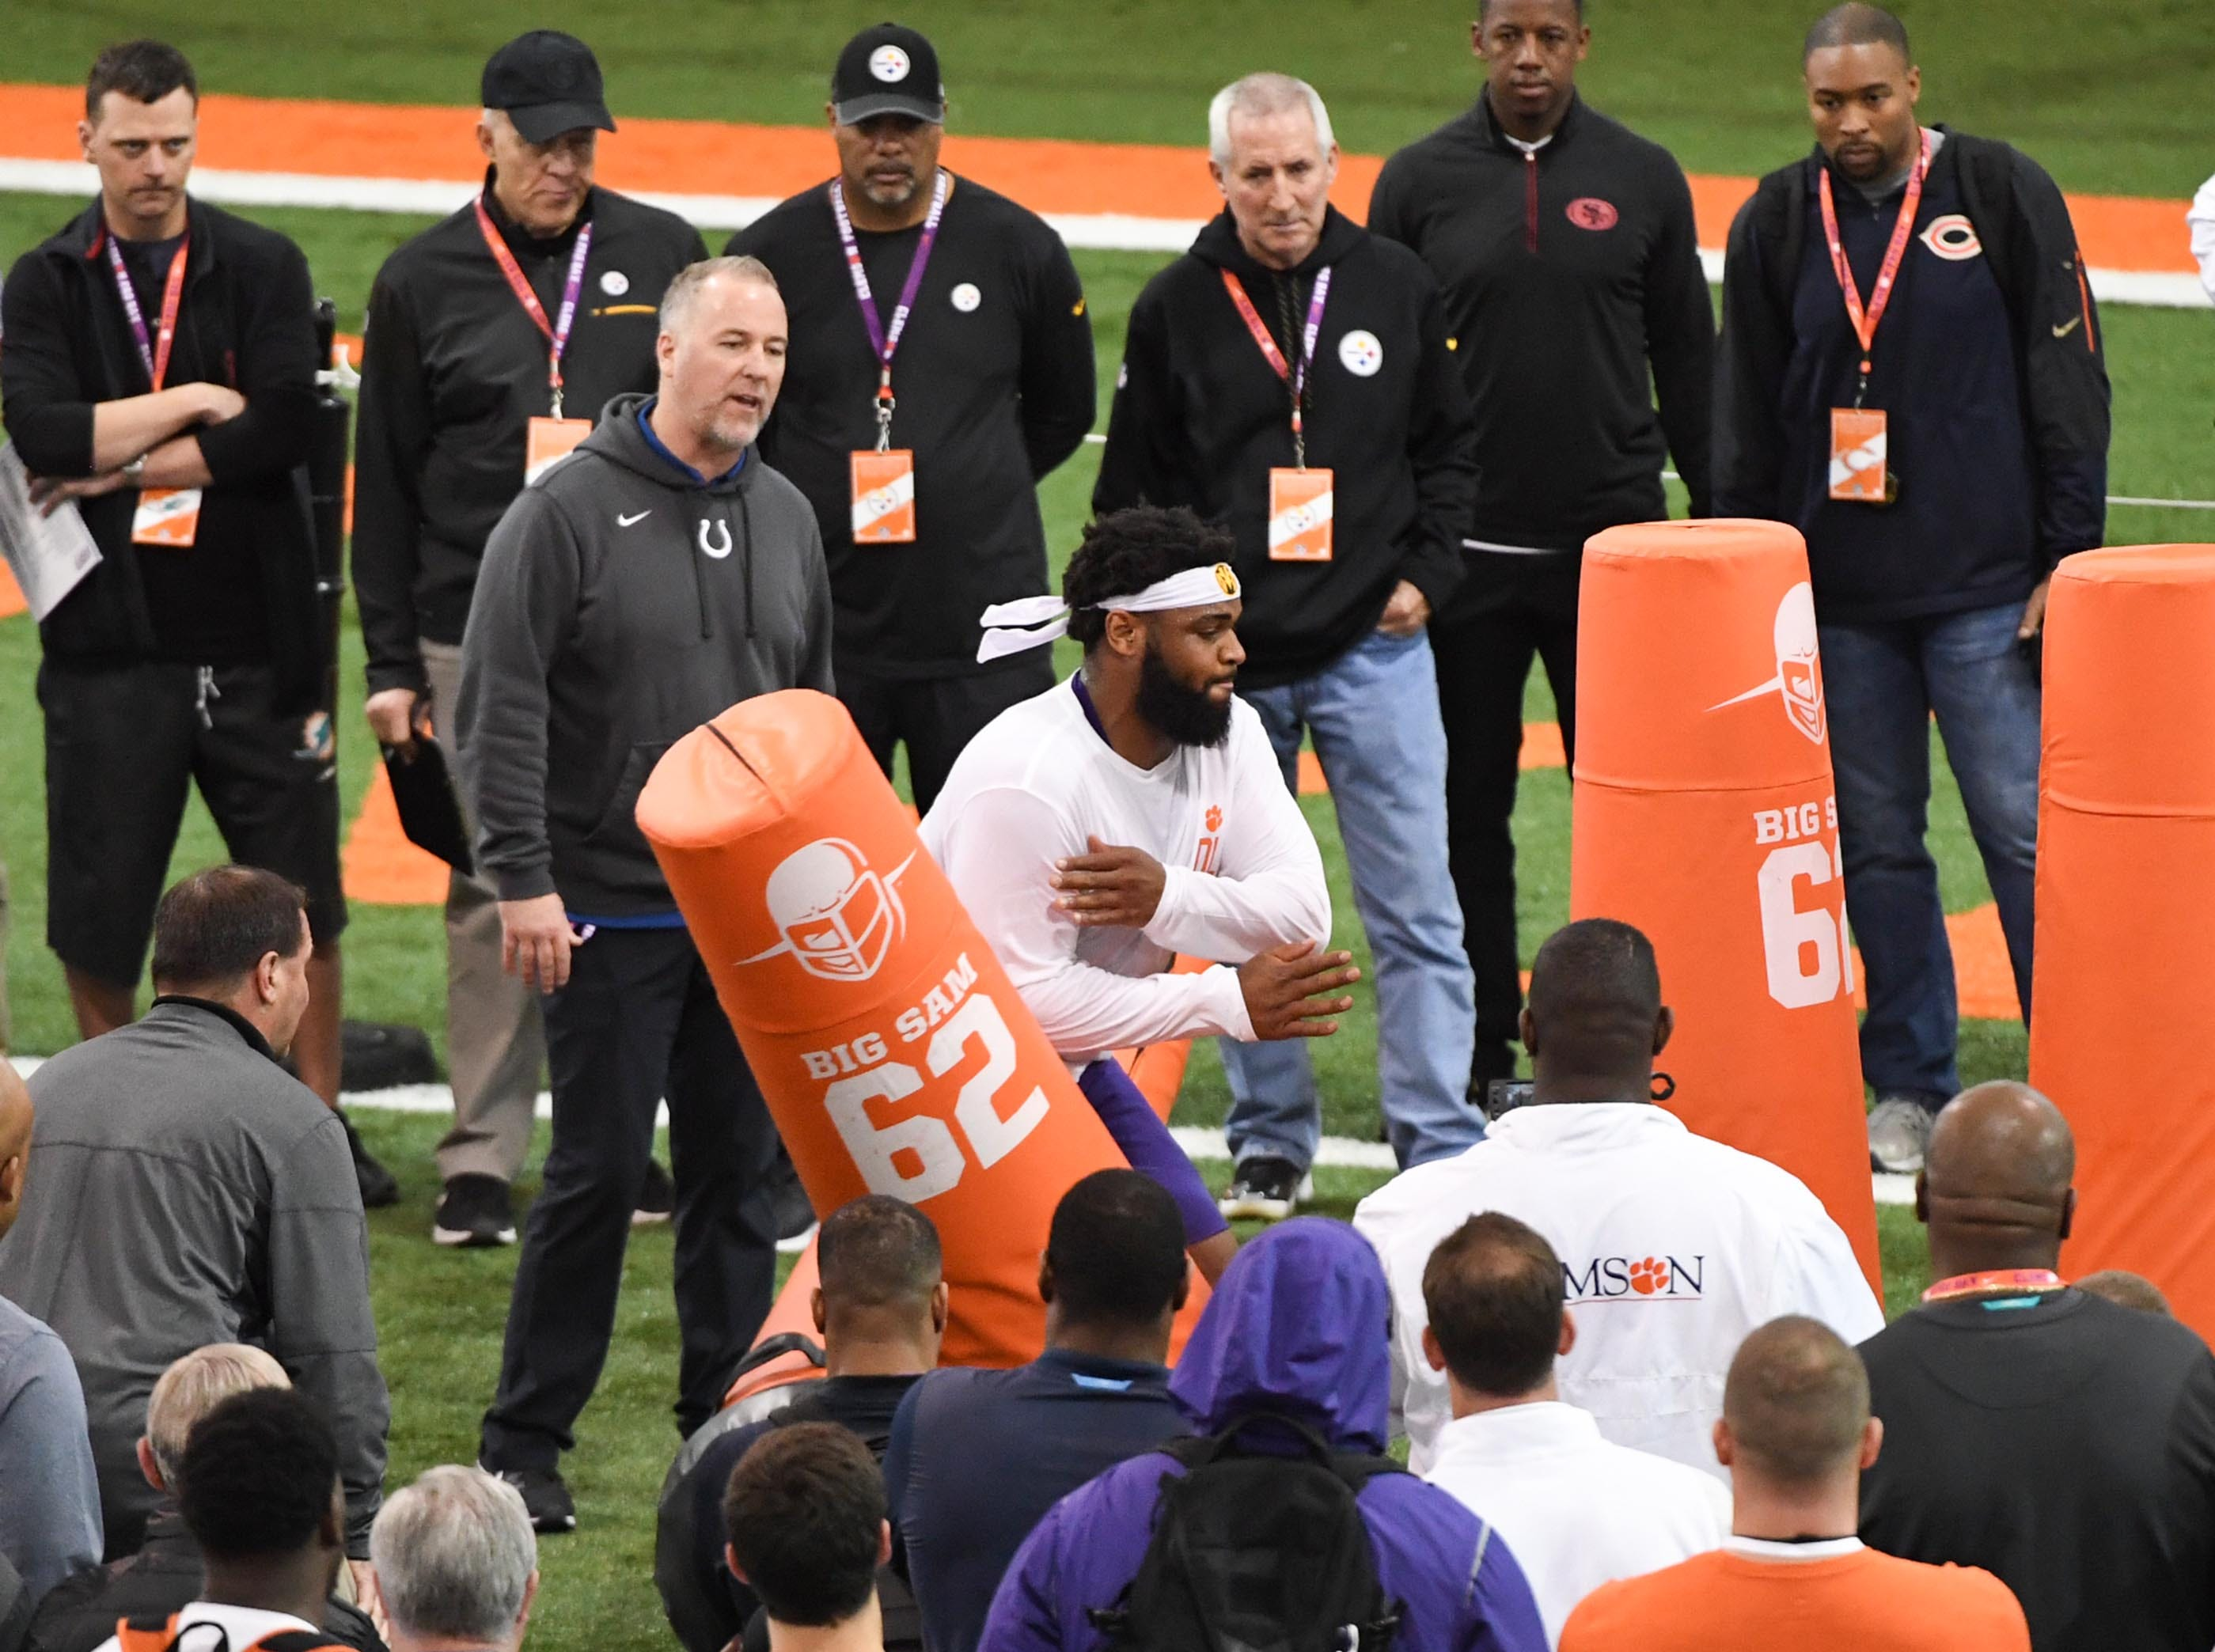 Defensive lineman Christian Wilkins shows skills to scouts during Clemson pro day at the Poe Indoor Facility in Clemson Thursday, March 14, 2019.